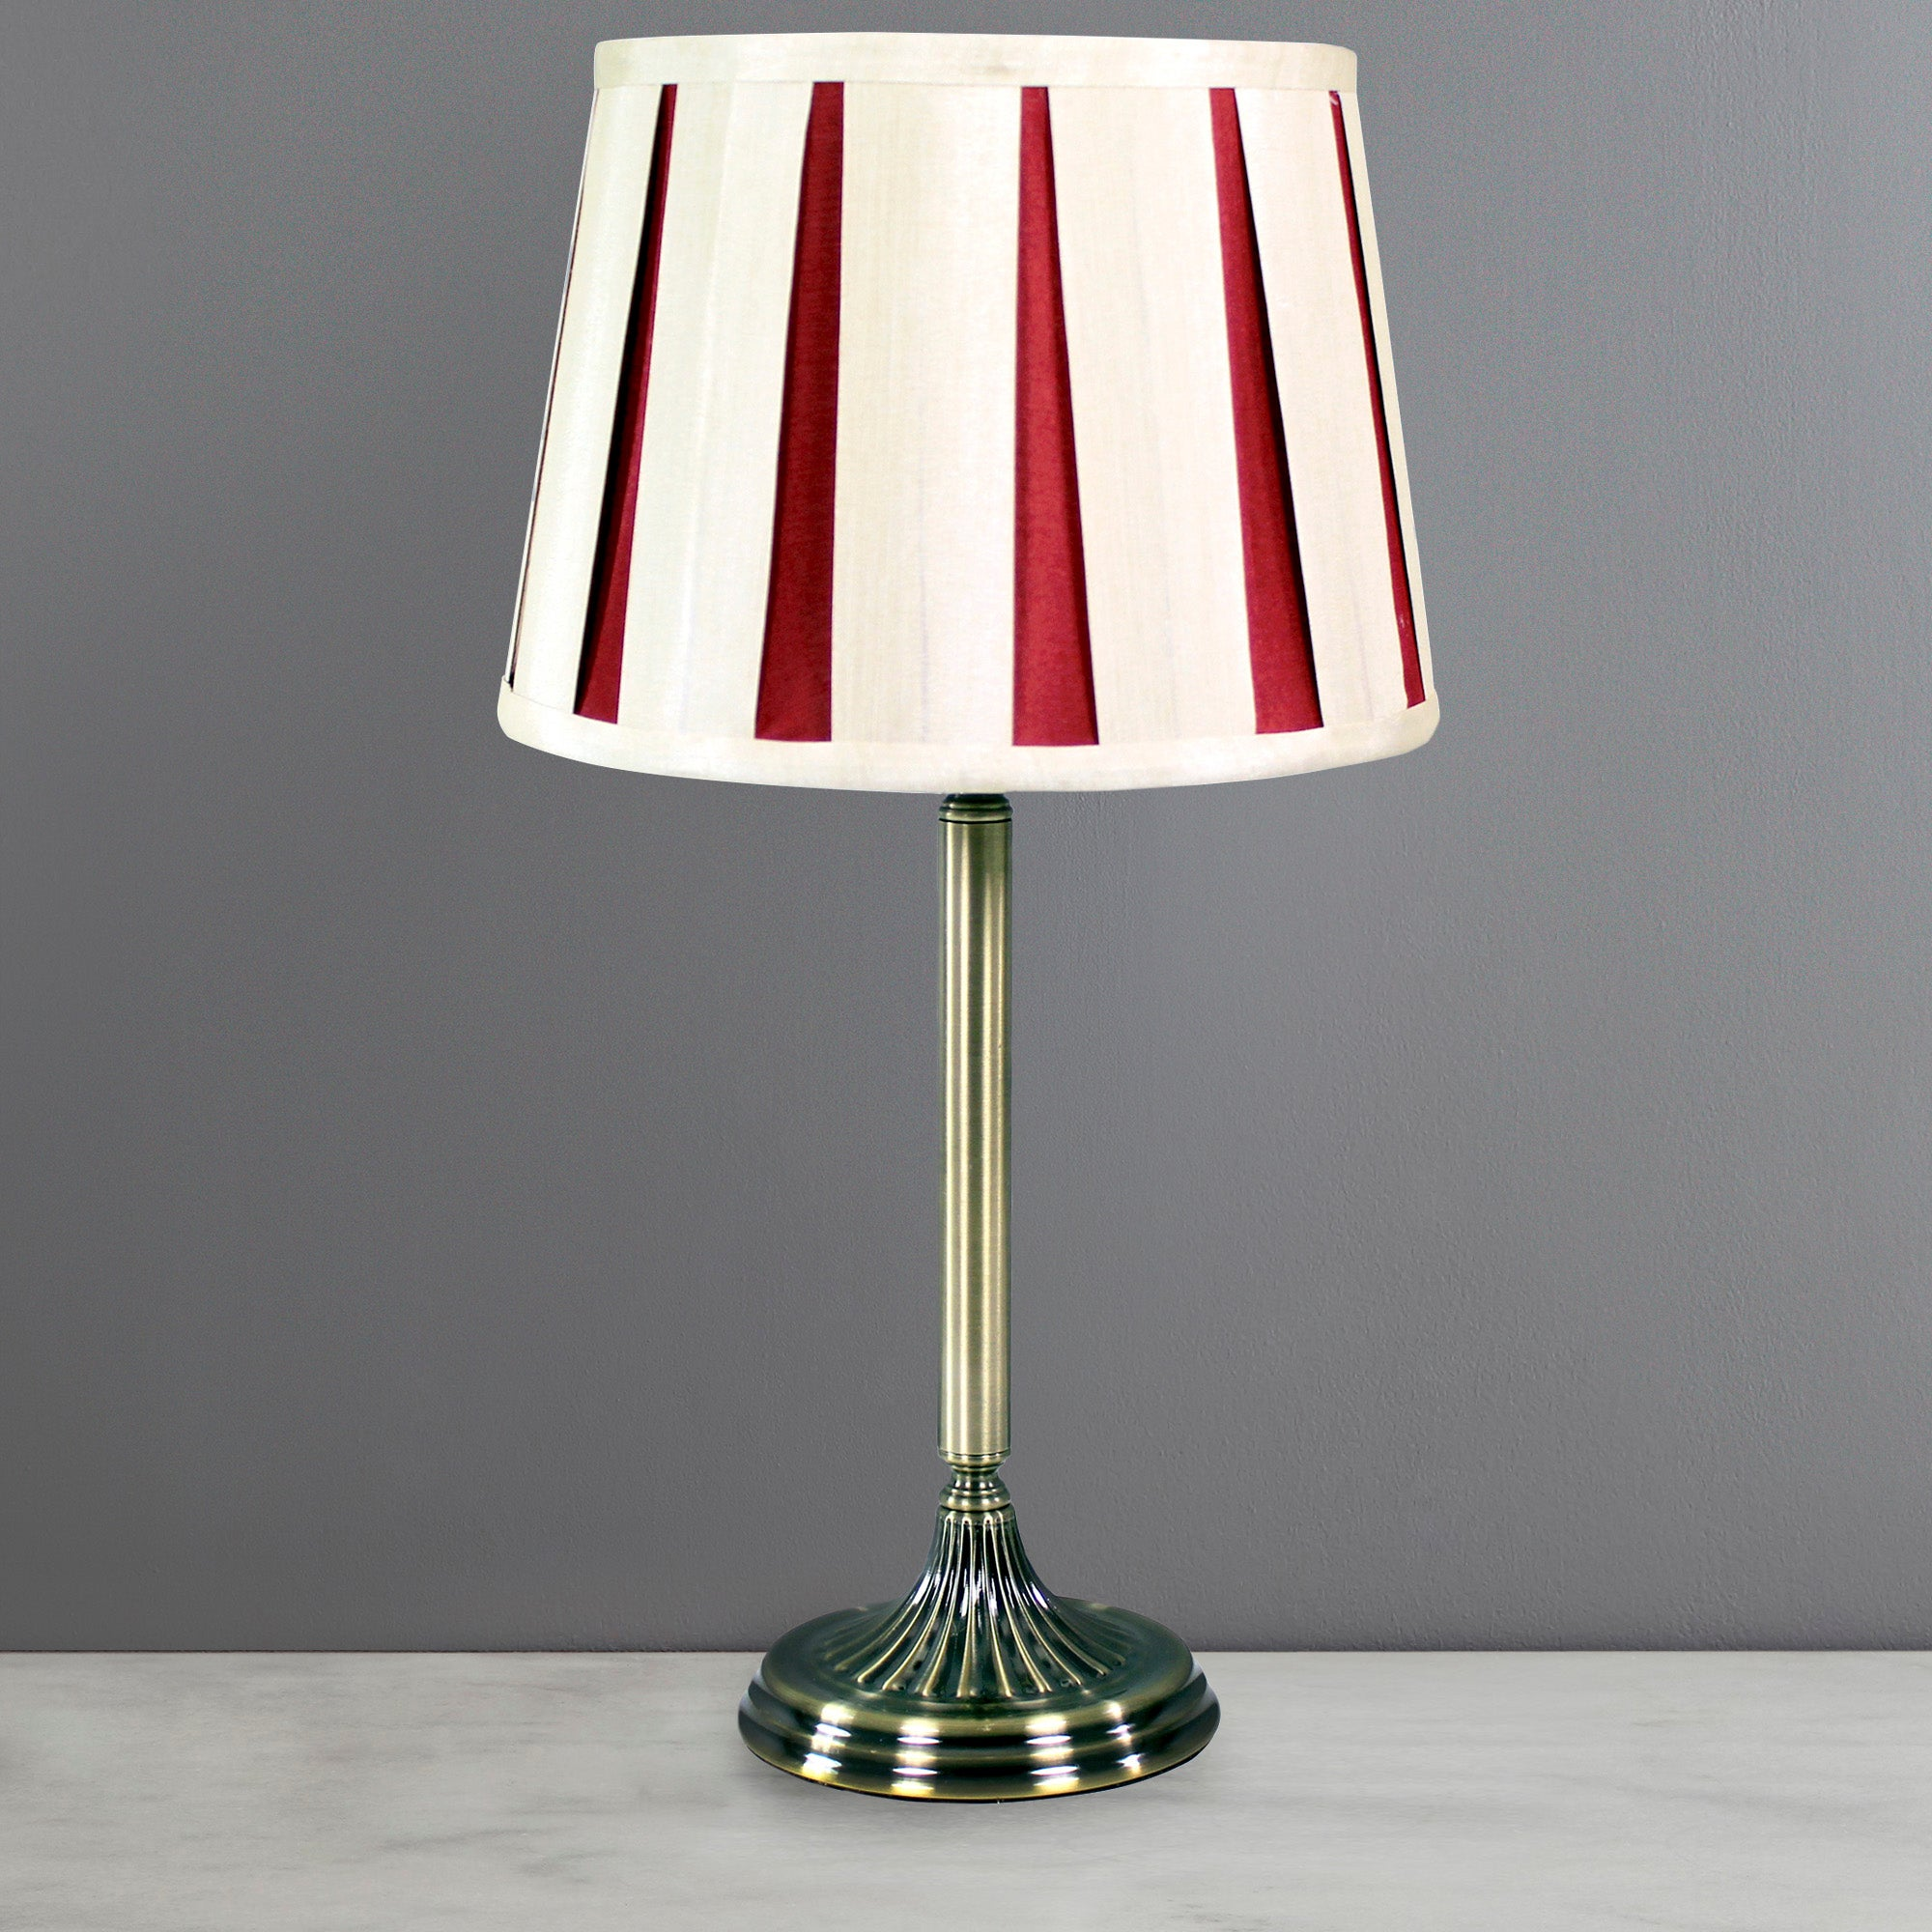 Photo of Chelsea pleat table lamp red / white